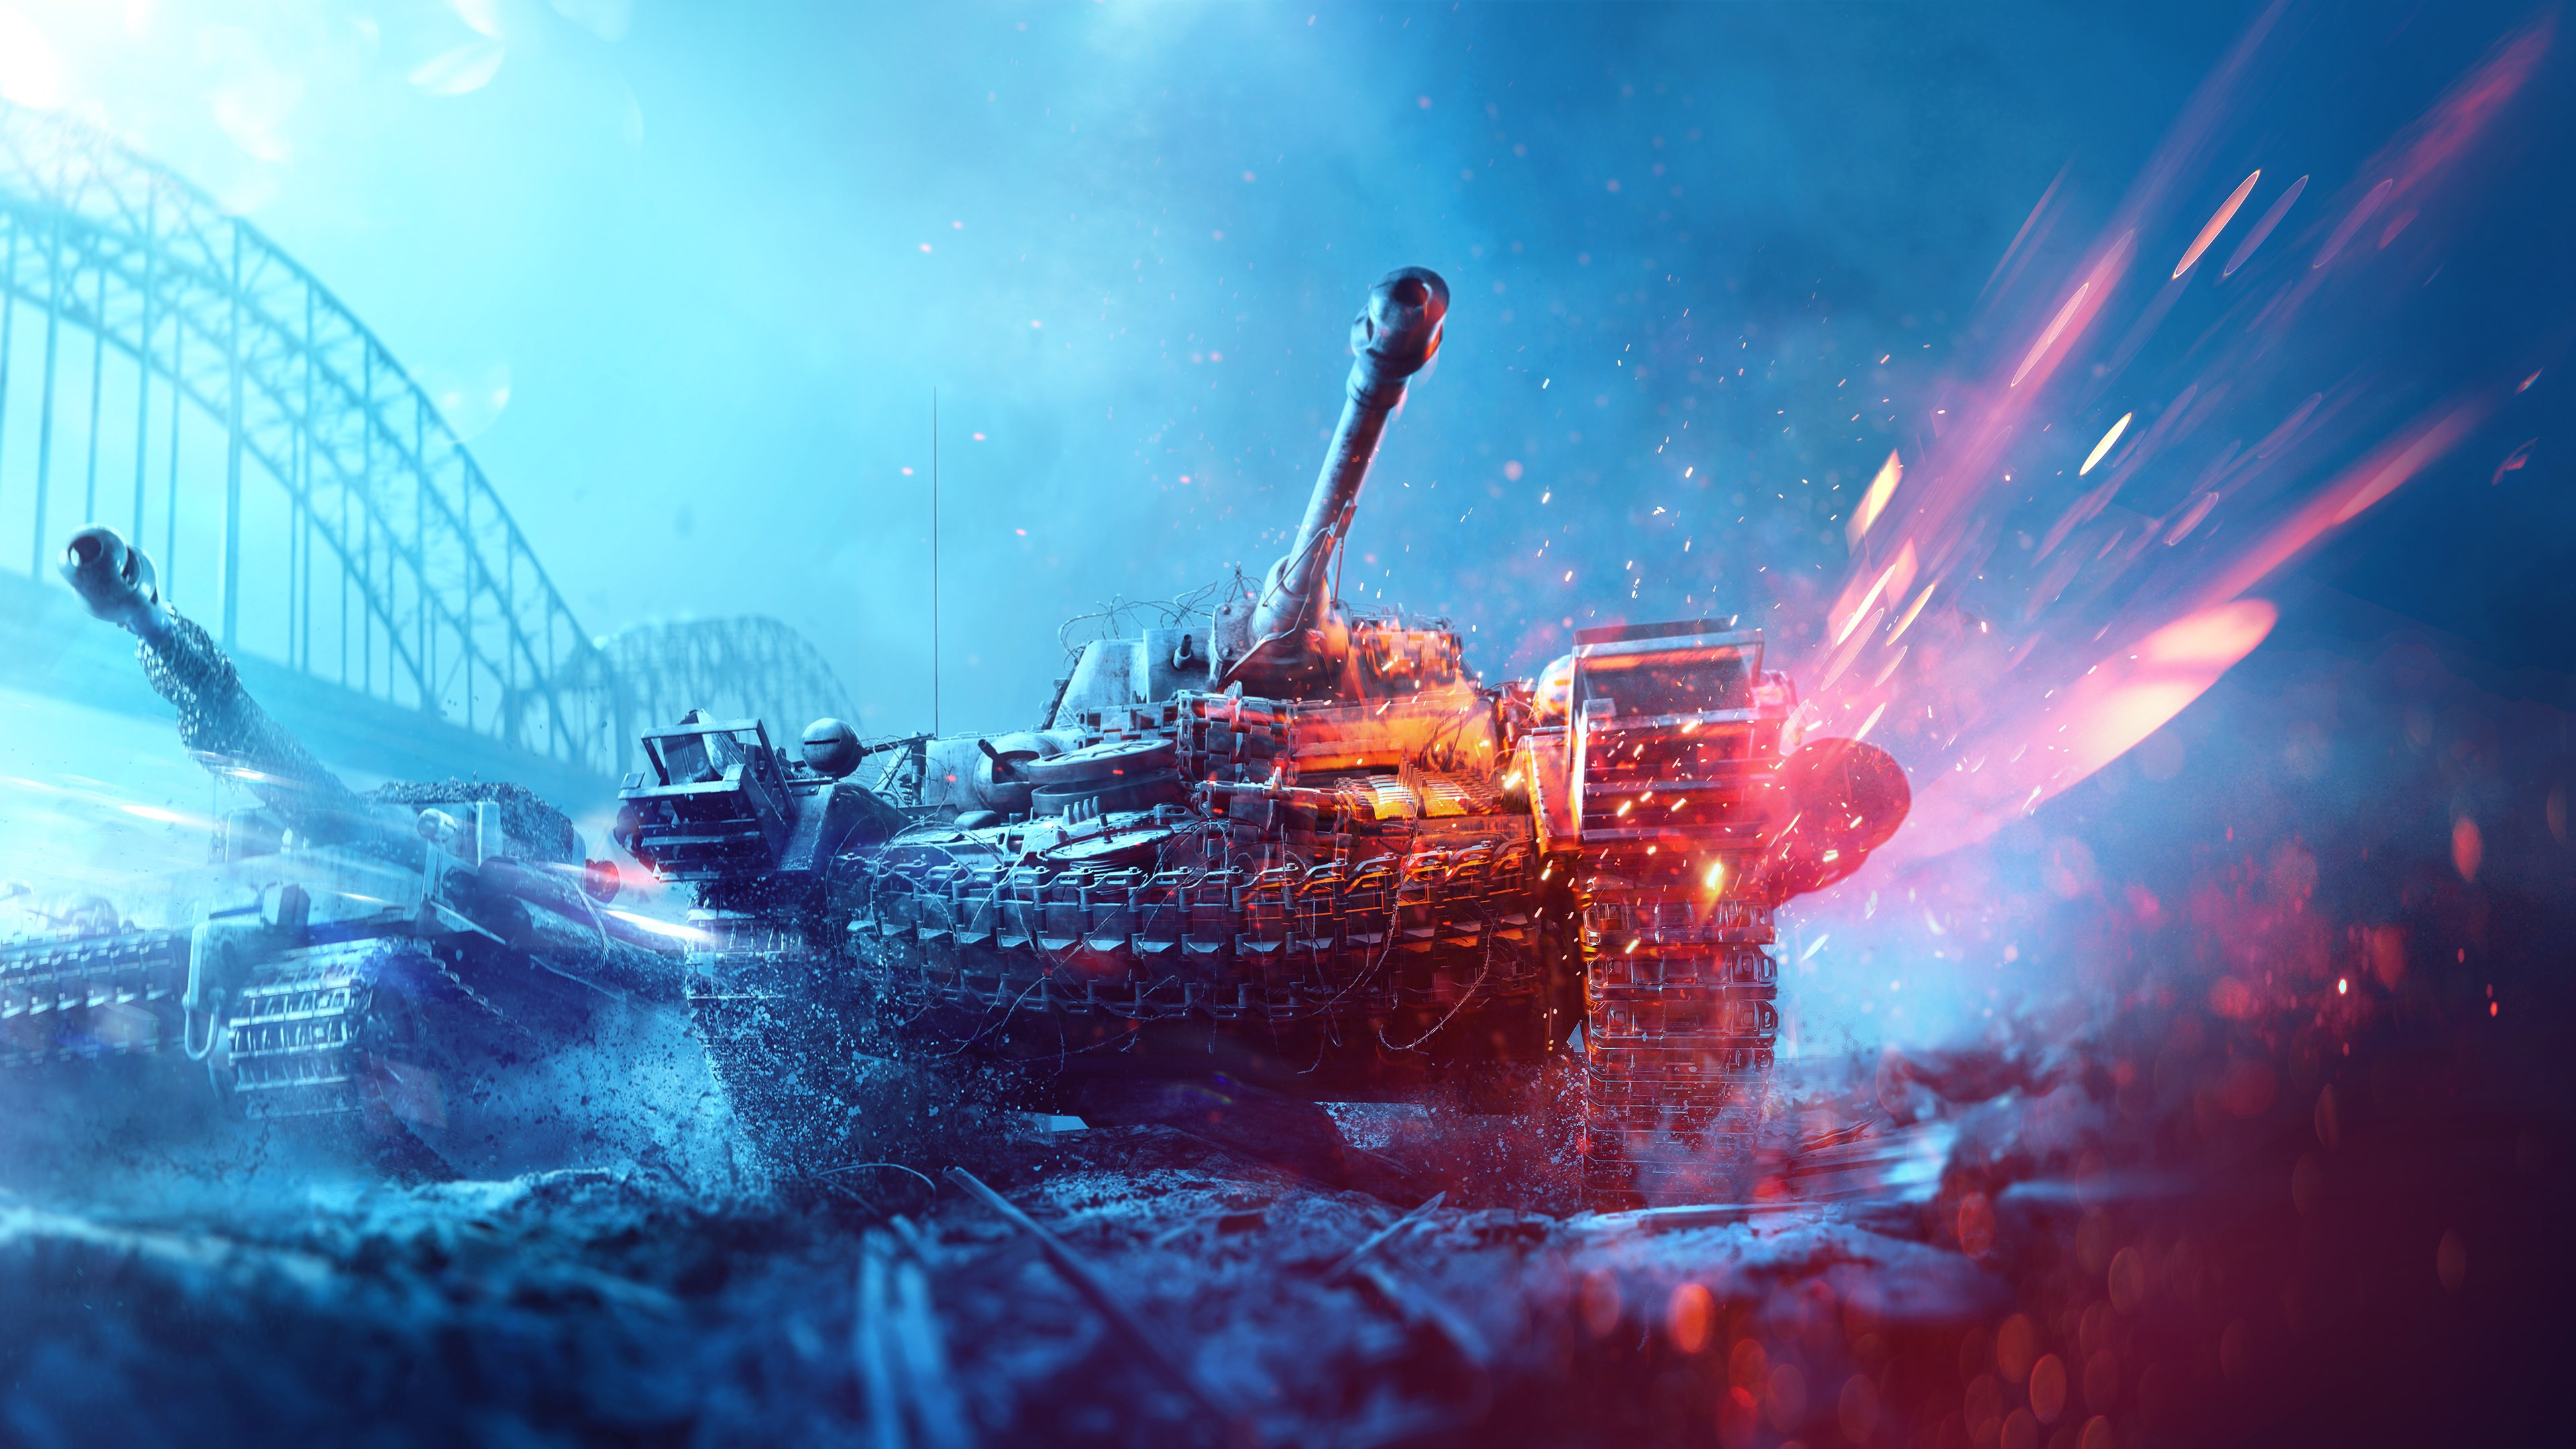 Ultra Hd Desktop Wallpapers Download Wallpaper Battlefield 5 Poster With Tanks 3840x2160